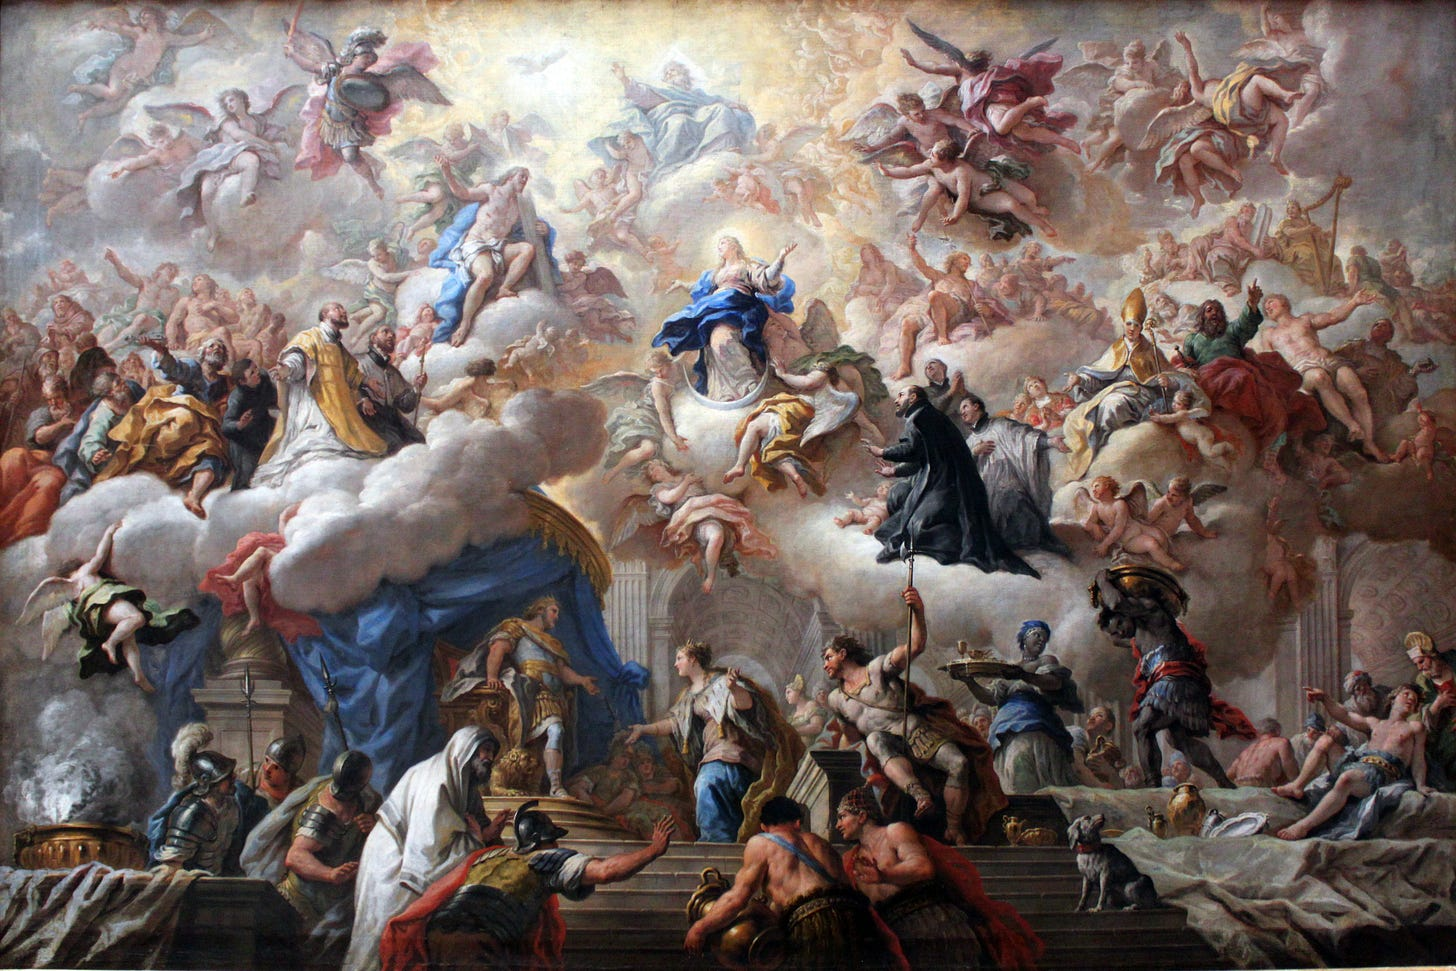 https://upload.wikimedia.org/wikipedia/commons/2/27/1710-15_de_Matteis_Triumph_of_the_Immaculate_anagoria.JPG